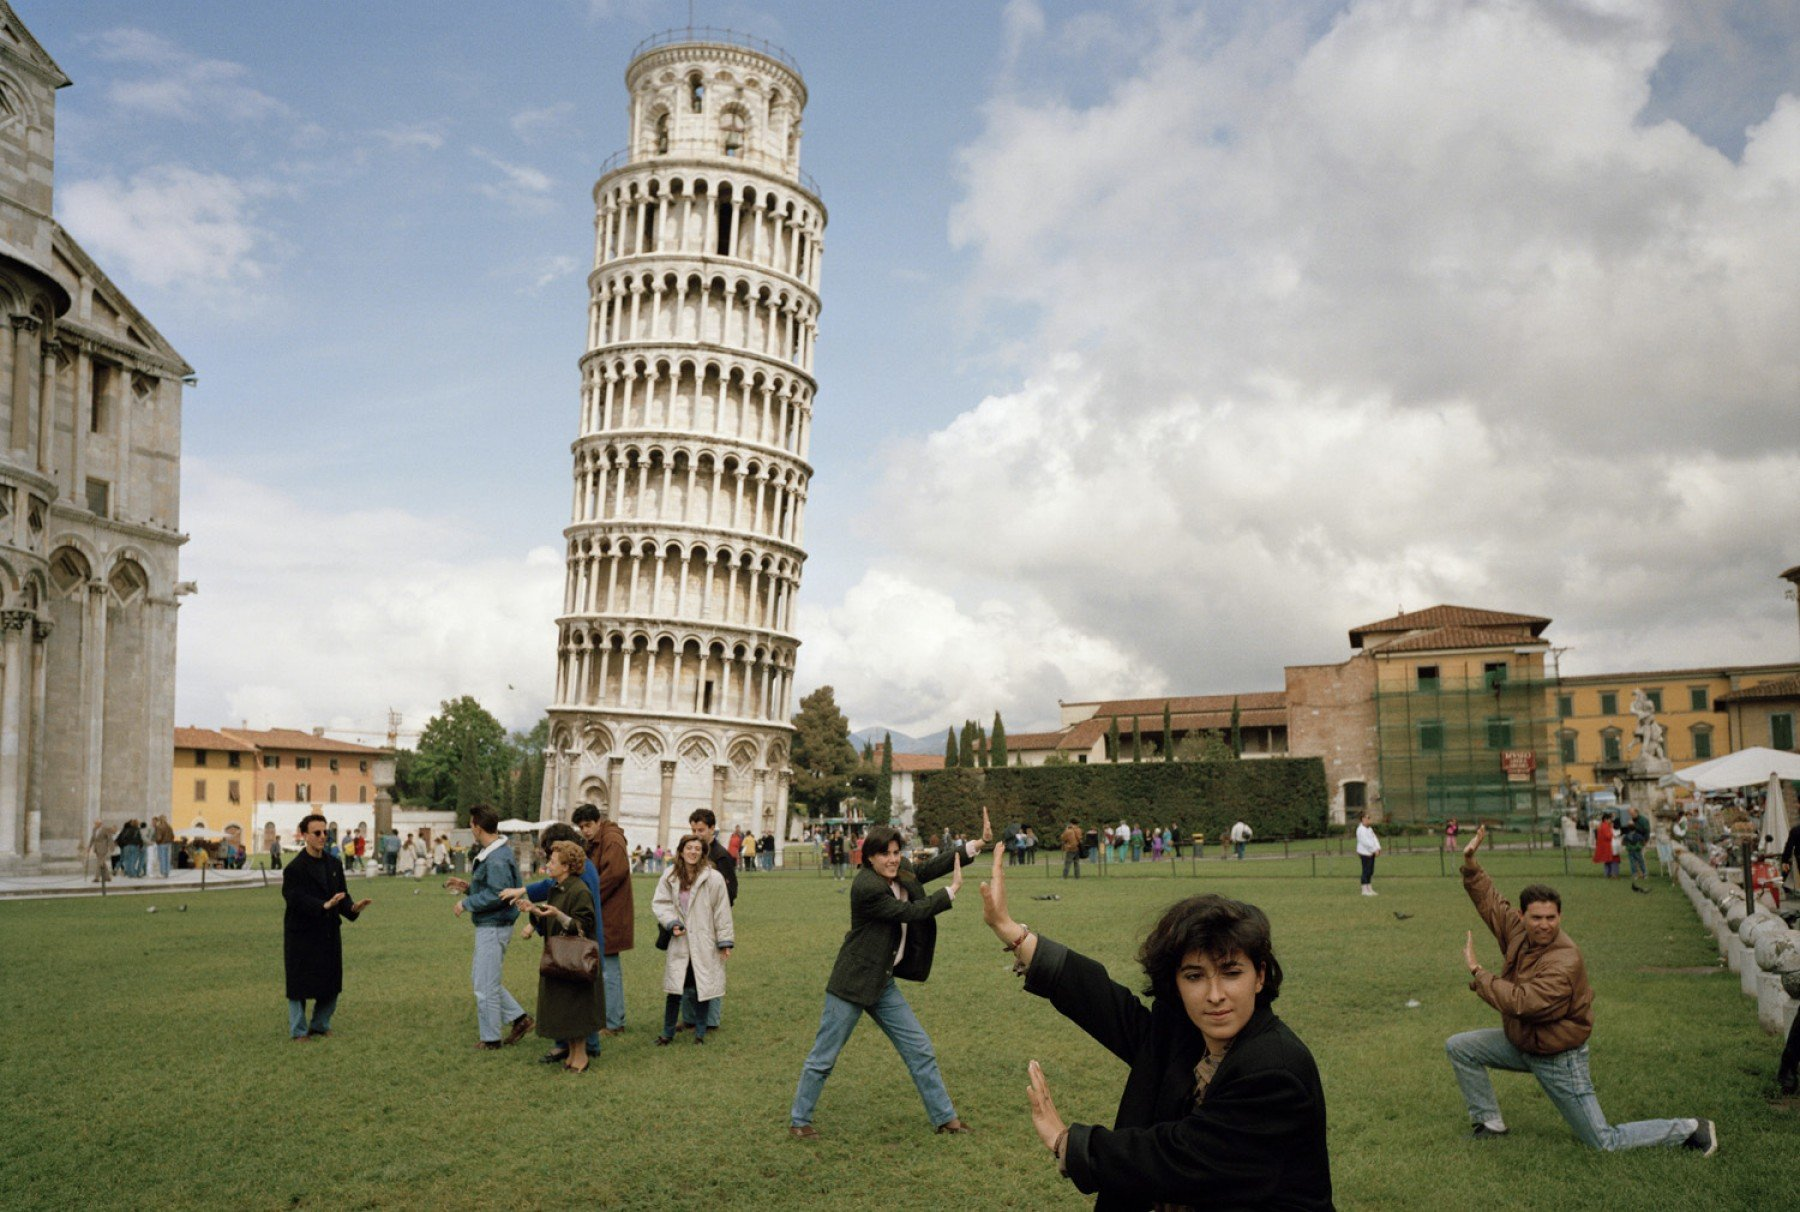 Pisa Tower Street photography by Martin Parr